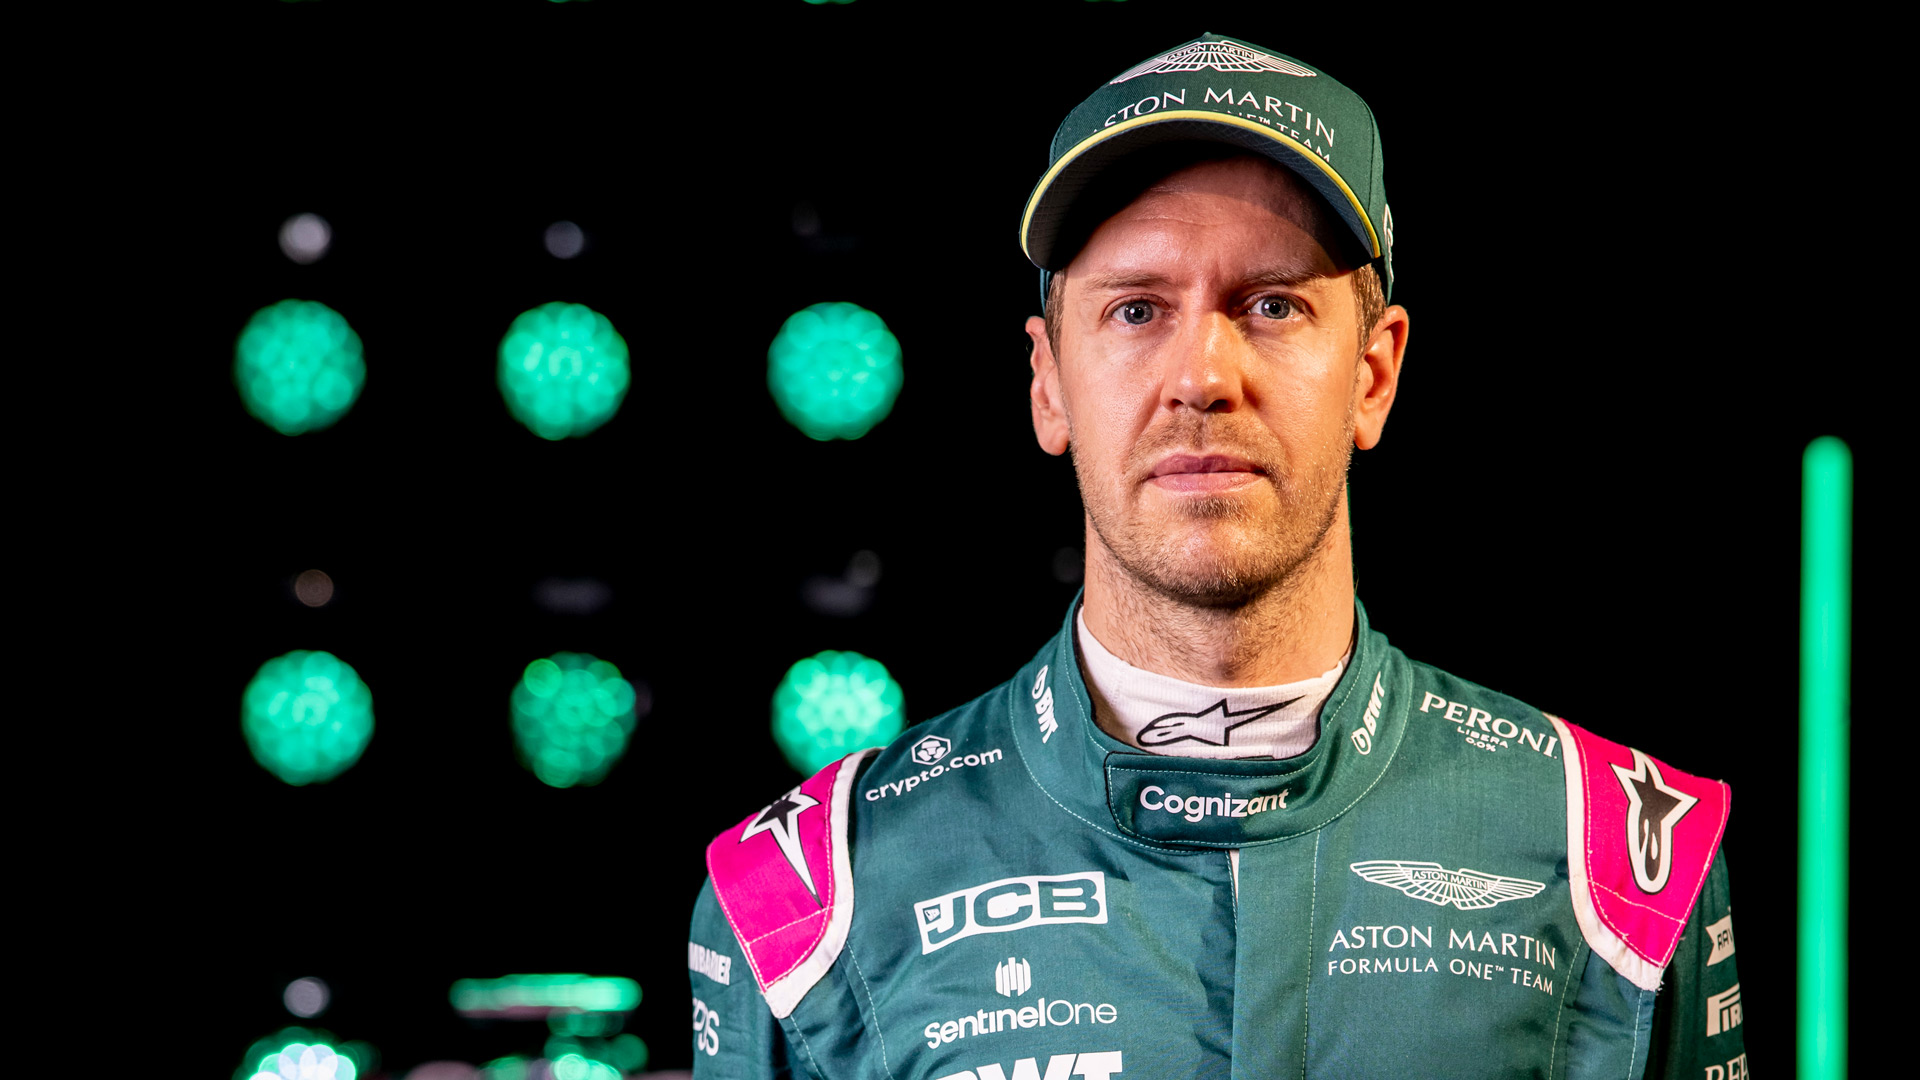 Vettel's driving style 'not as extreme' as Perez's, says Aston Martin Technical Director of new charge - Formula 1 RSS UK